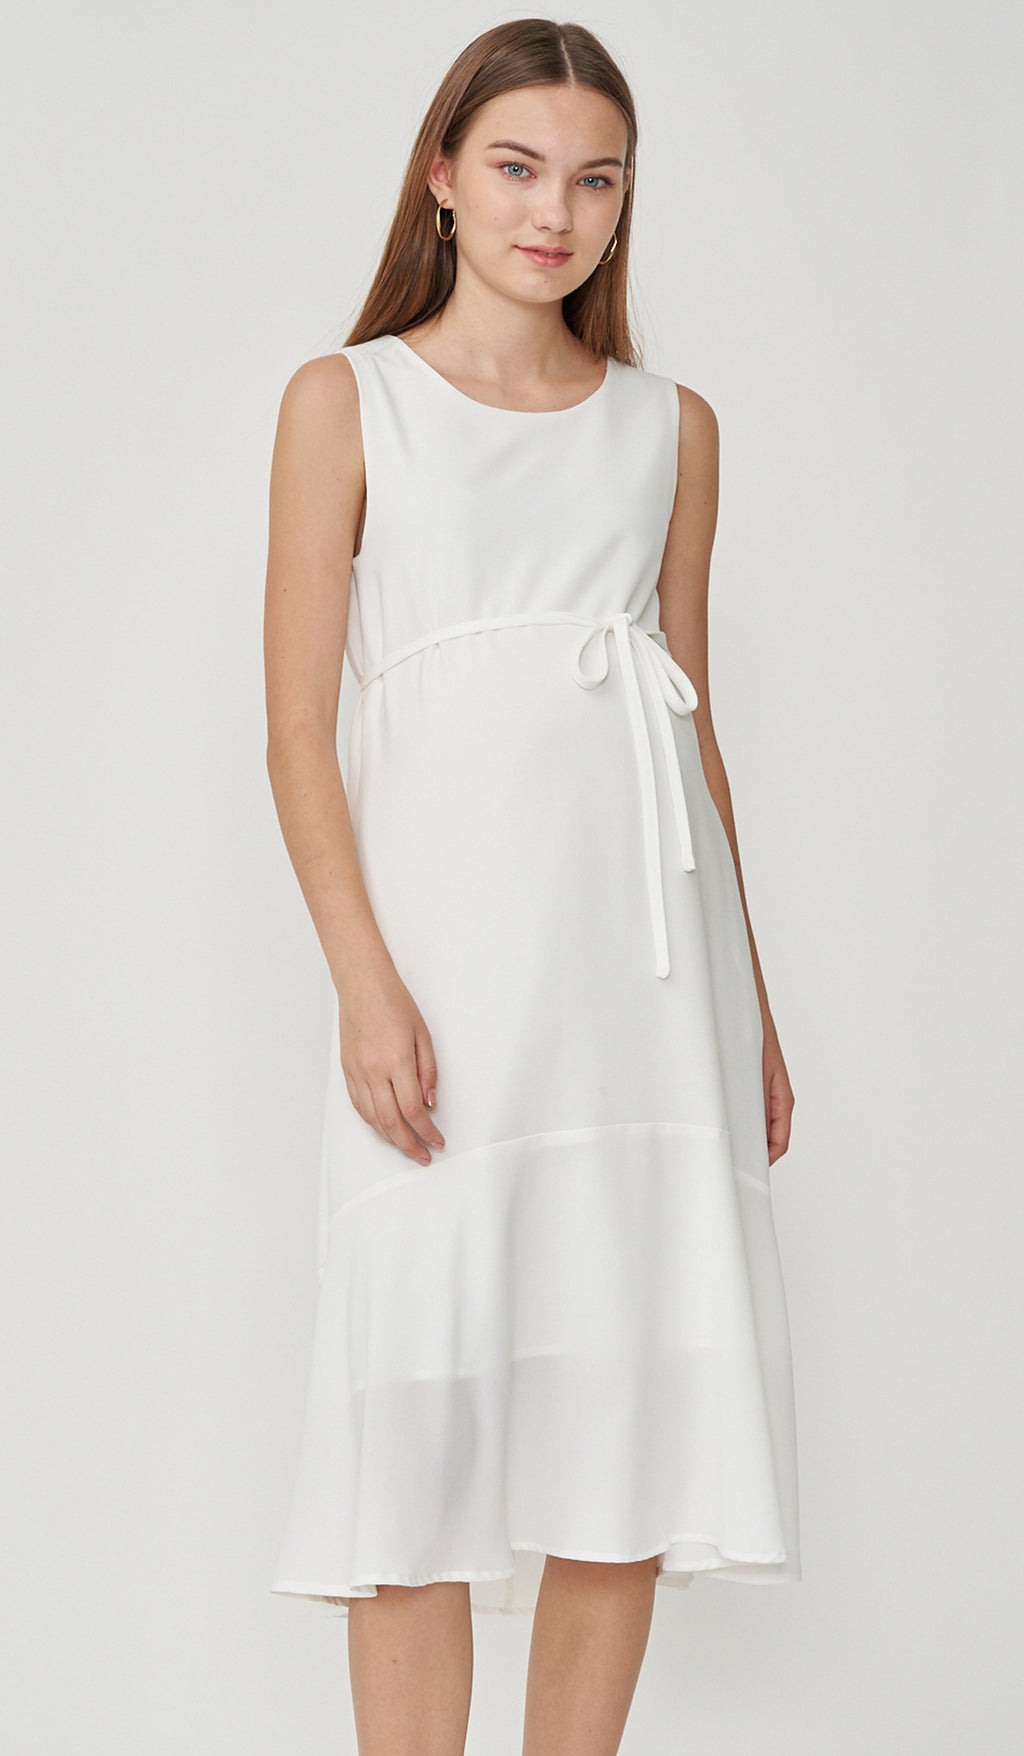 EDNA NURSING MIDI FLOUNCE DRESS WHITE